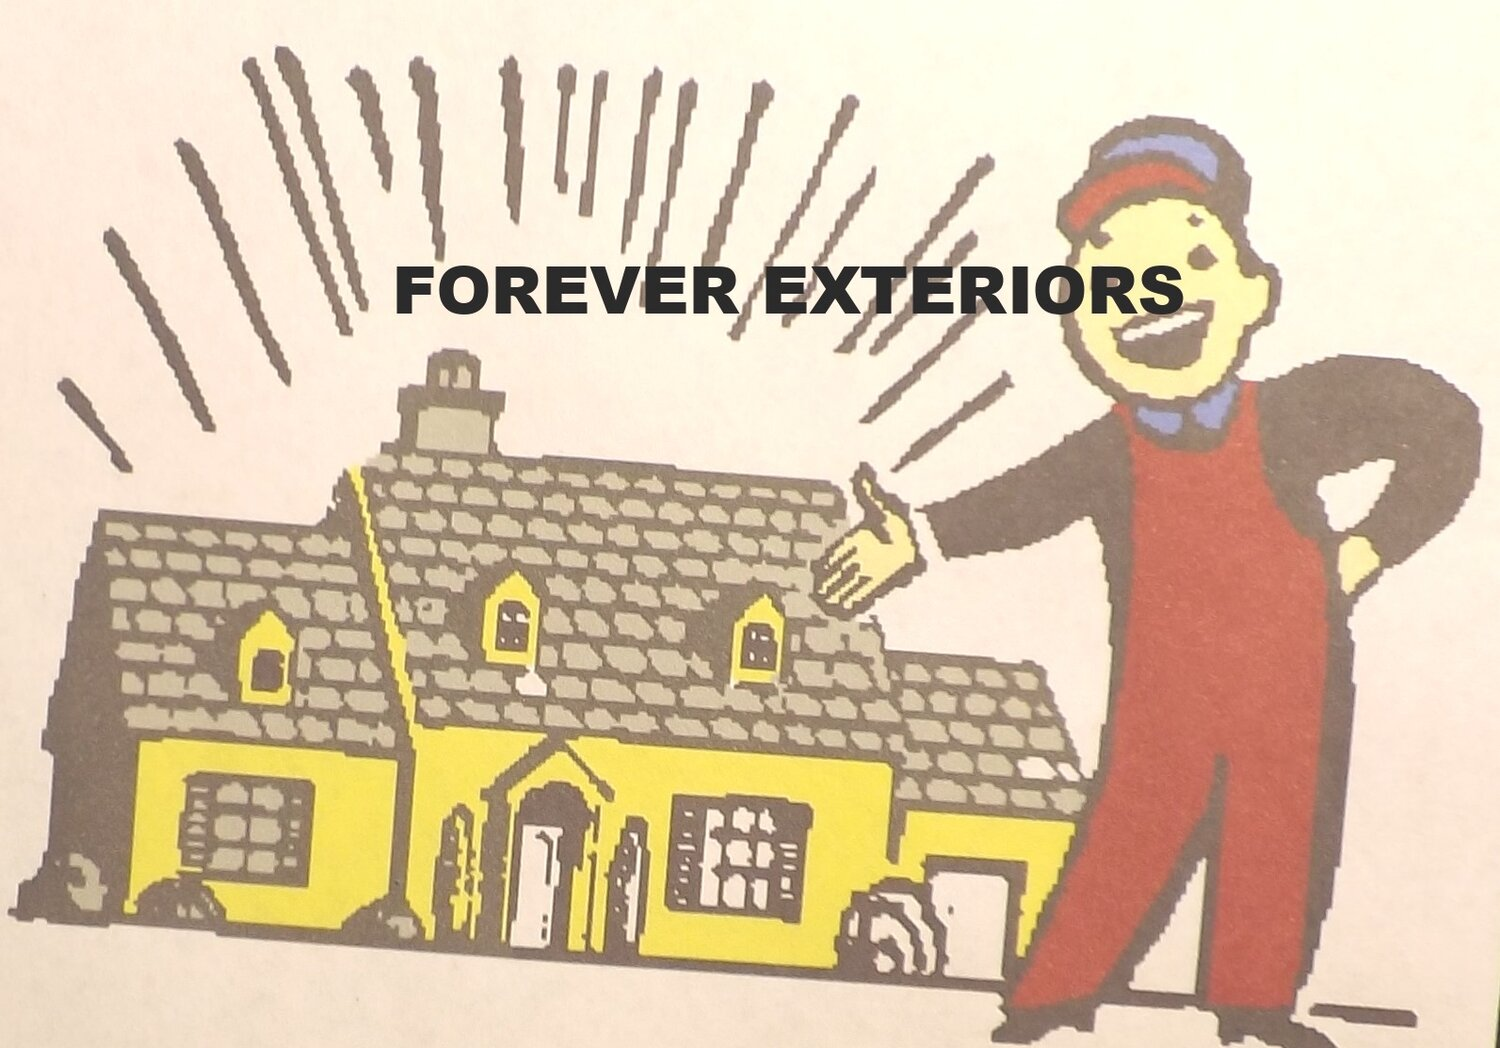 FOREVER EXTERIORS